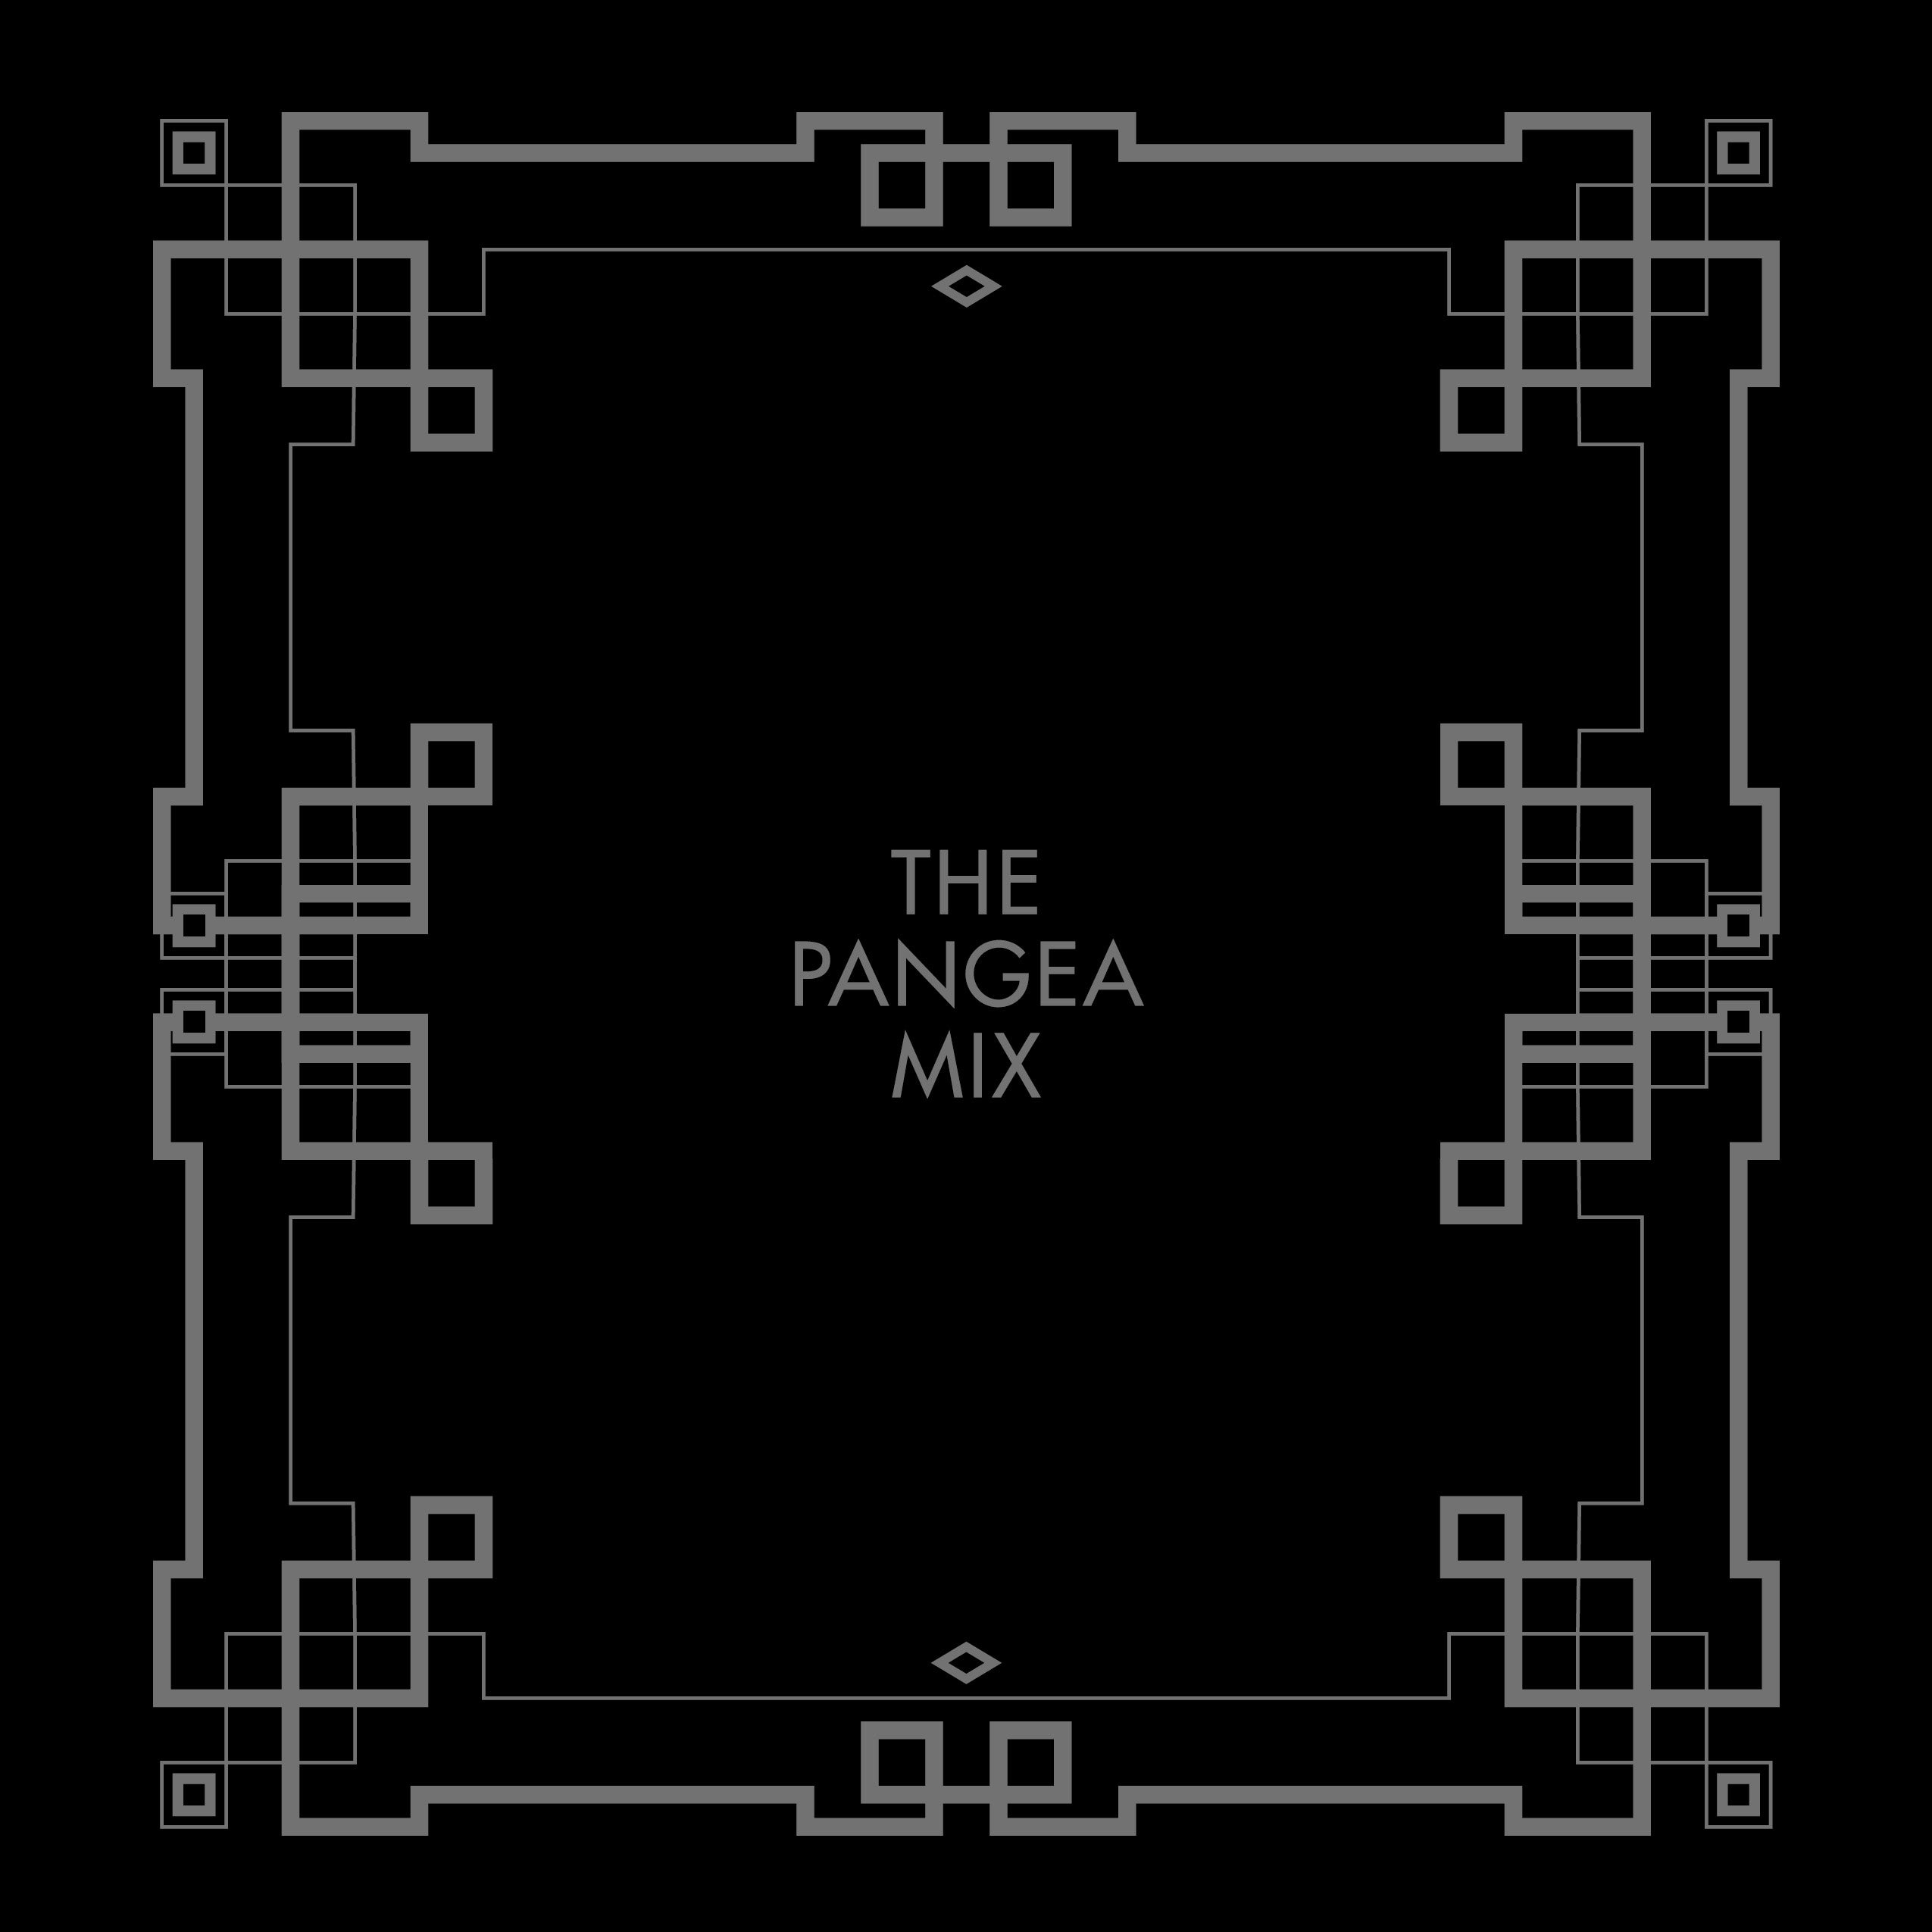 The Pangea Mix by Nacho Lovers